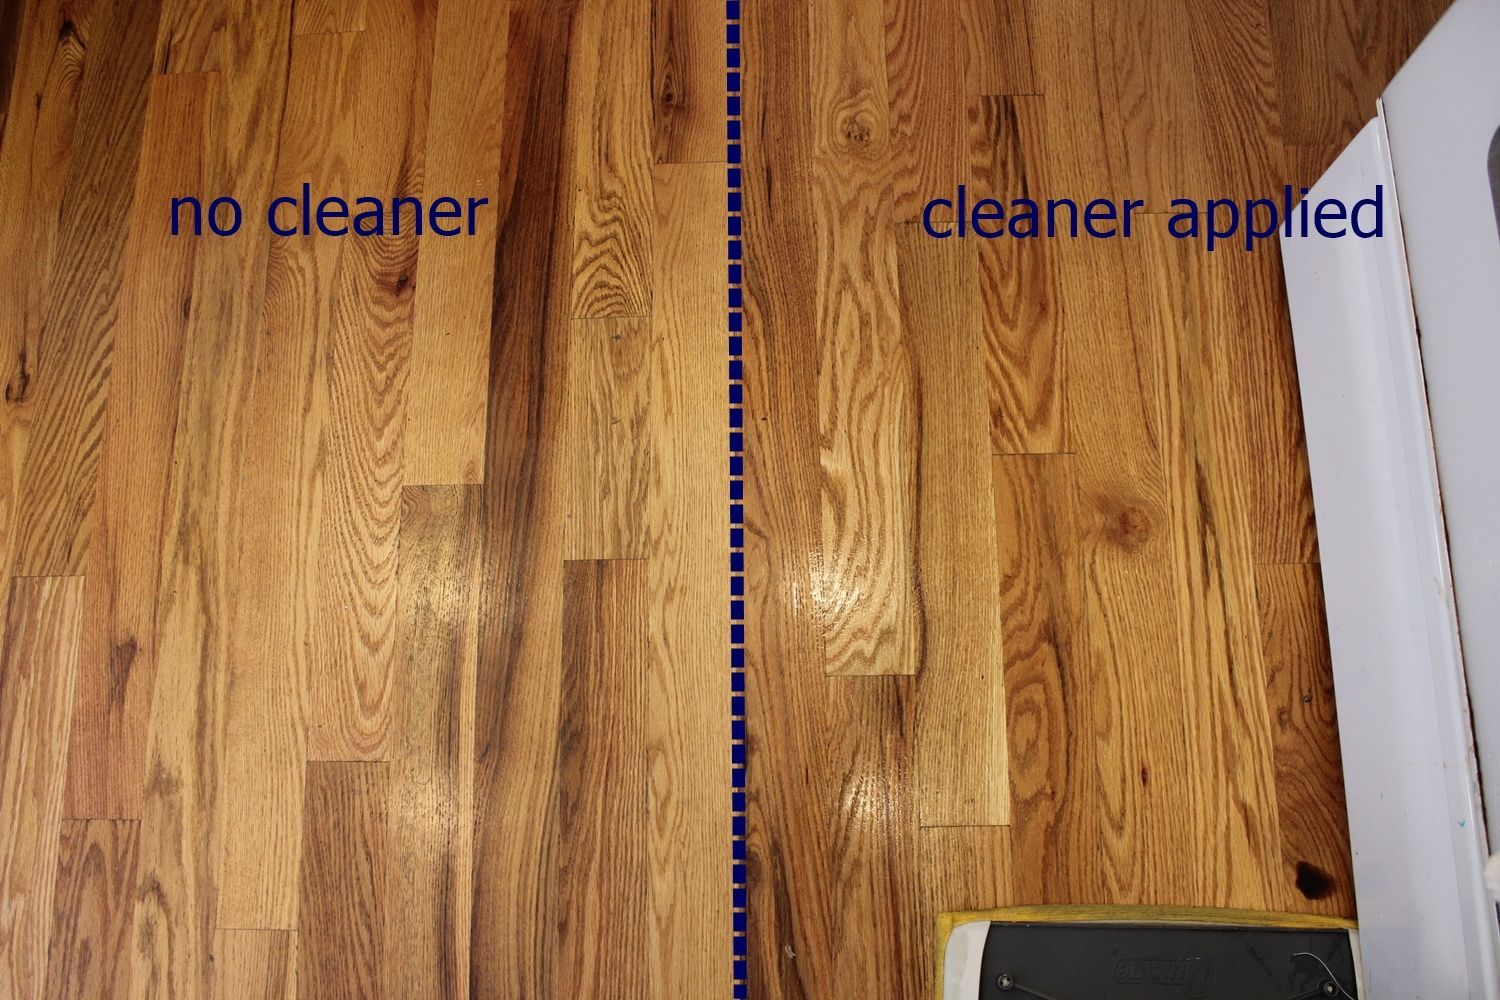 DIY Wood Floor Cleaner - apply to floor